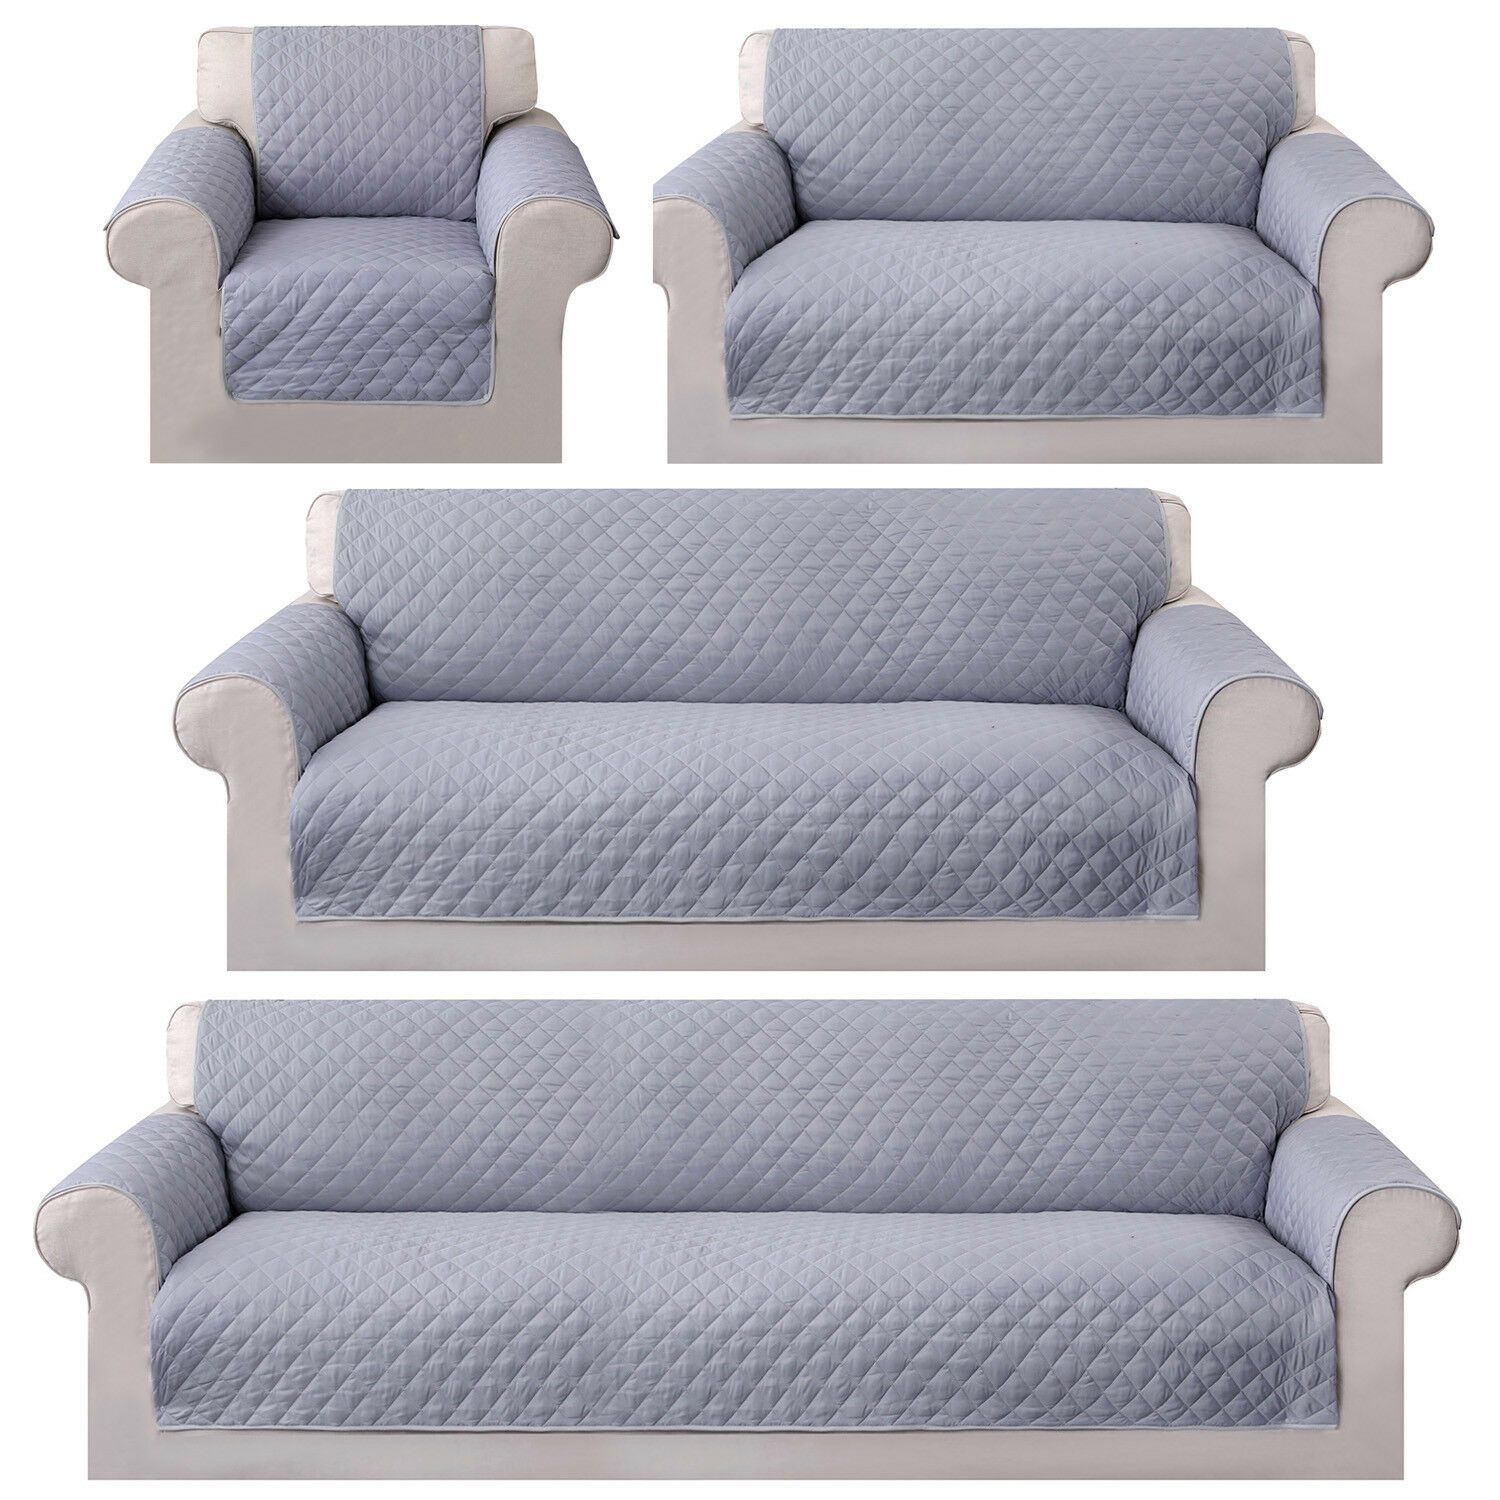 Gray Waterproof Pet Sofa Cover Reversible Chair Couch Slipcover